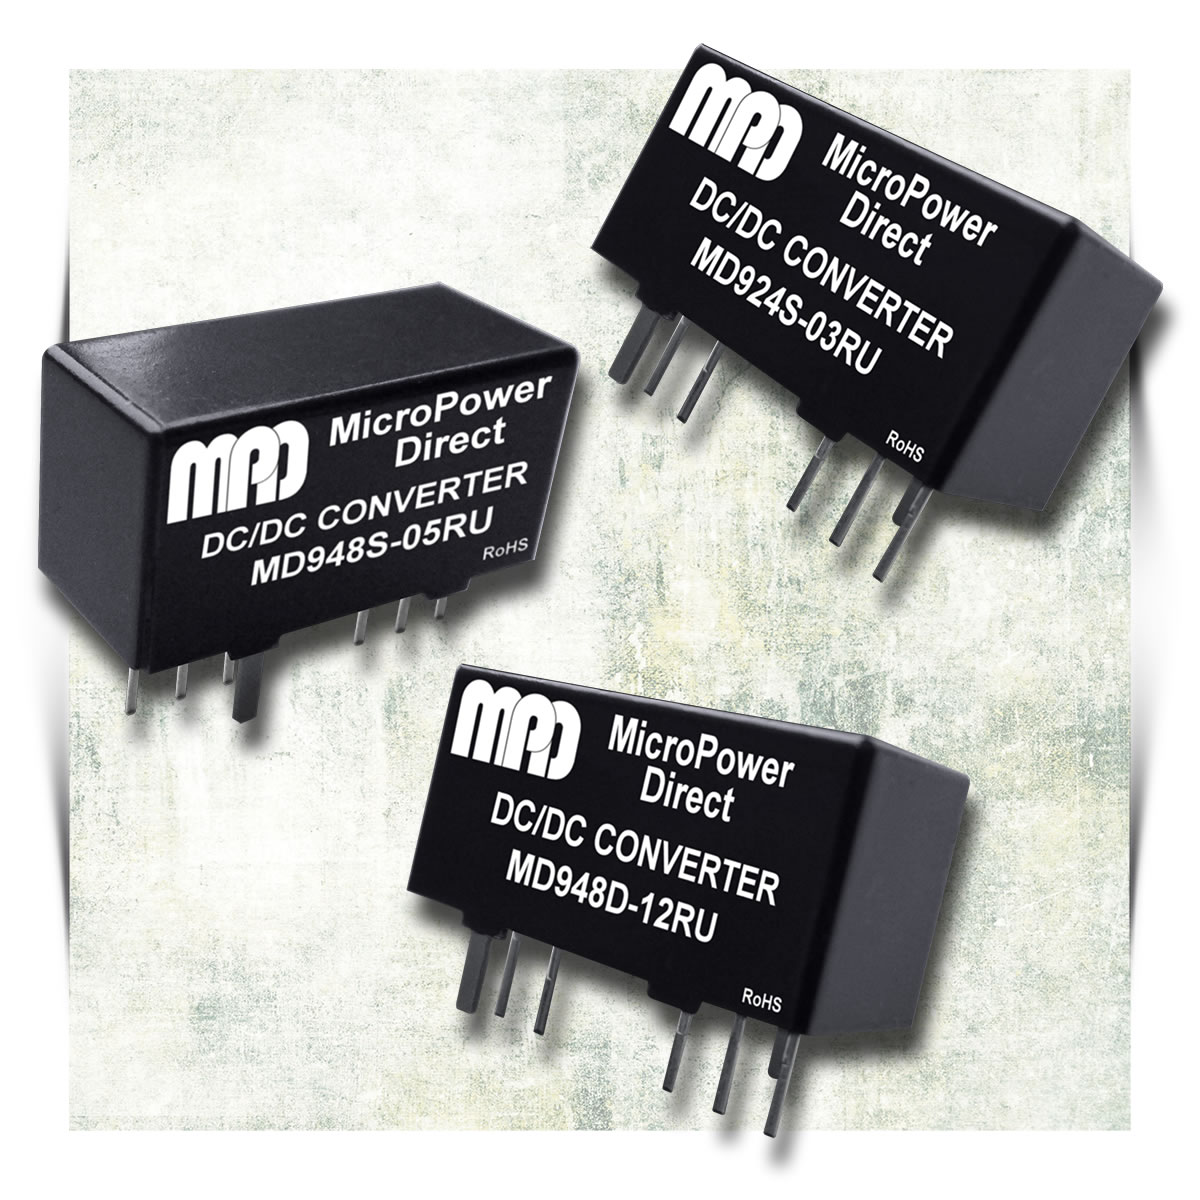 MicroPower Direct introduces MD900xRU series